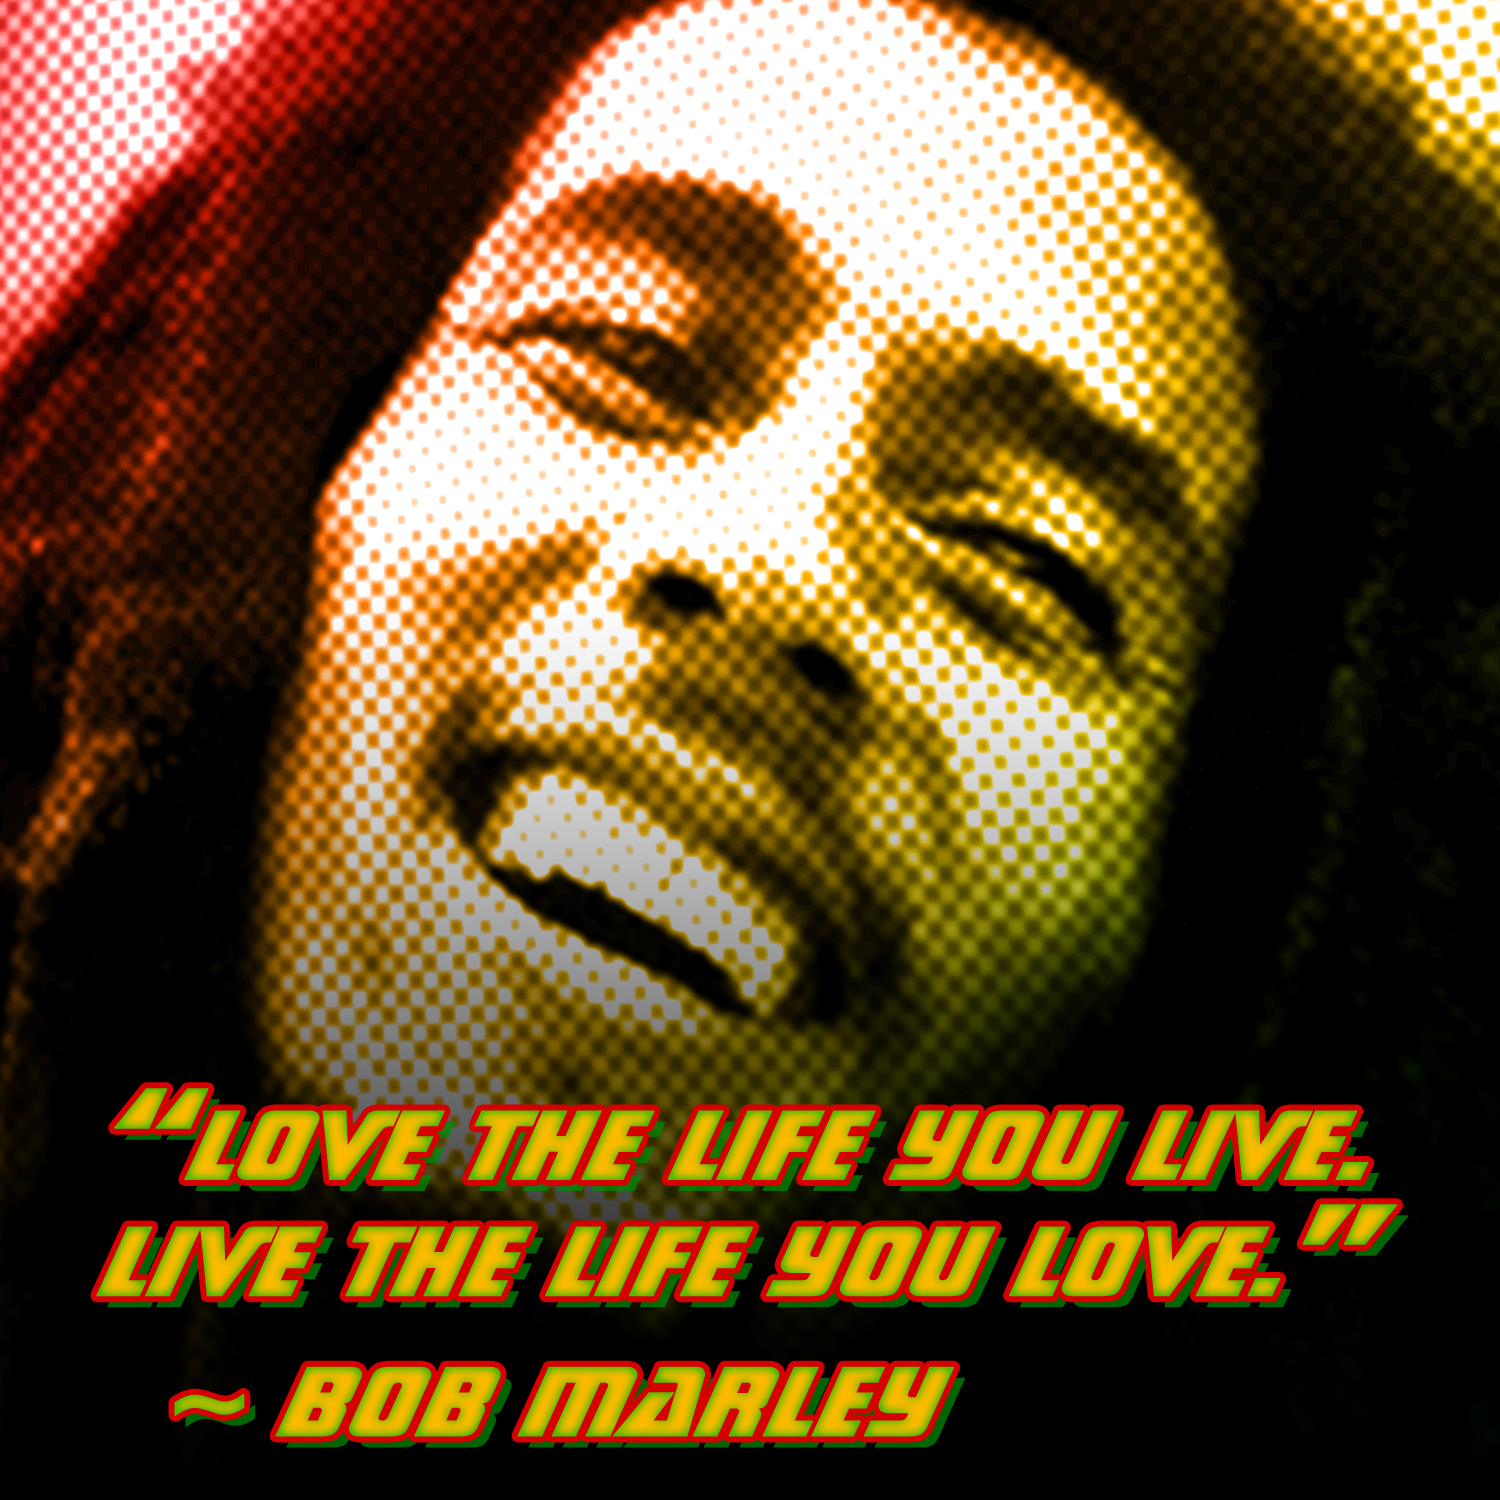 """Live the live you live. Live the life you love."" -Bob Marley"